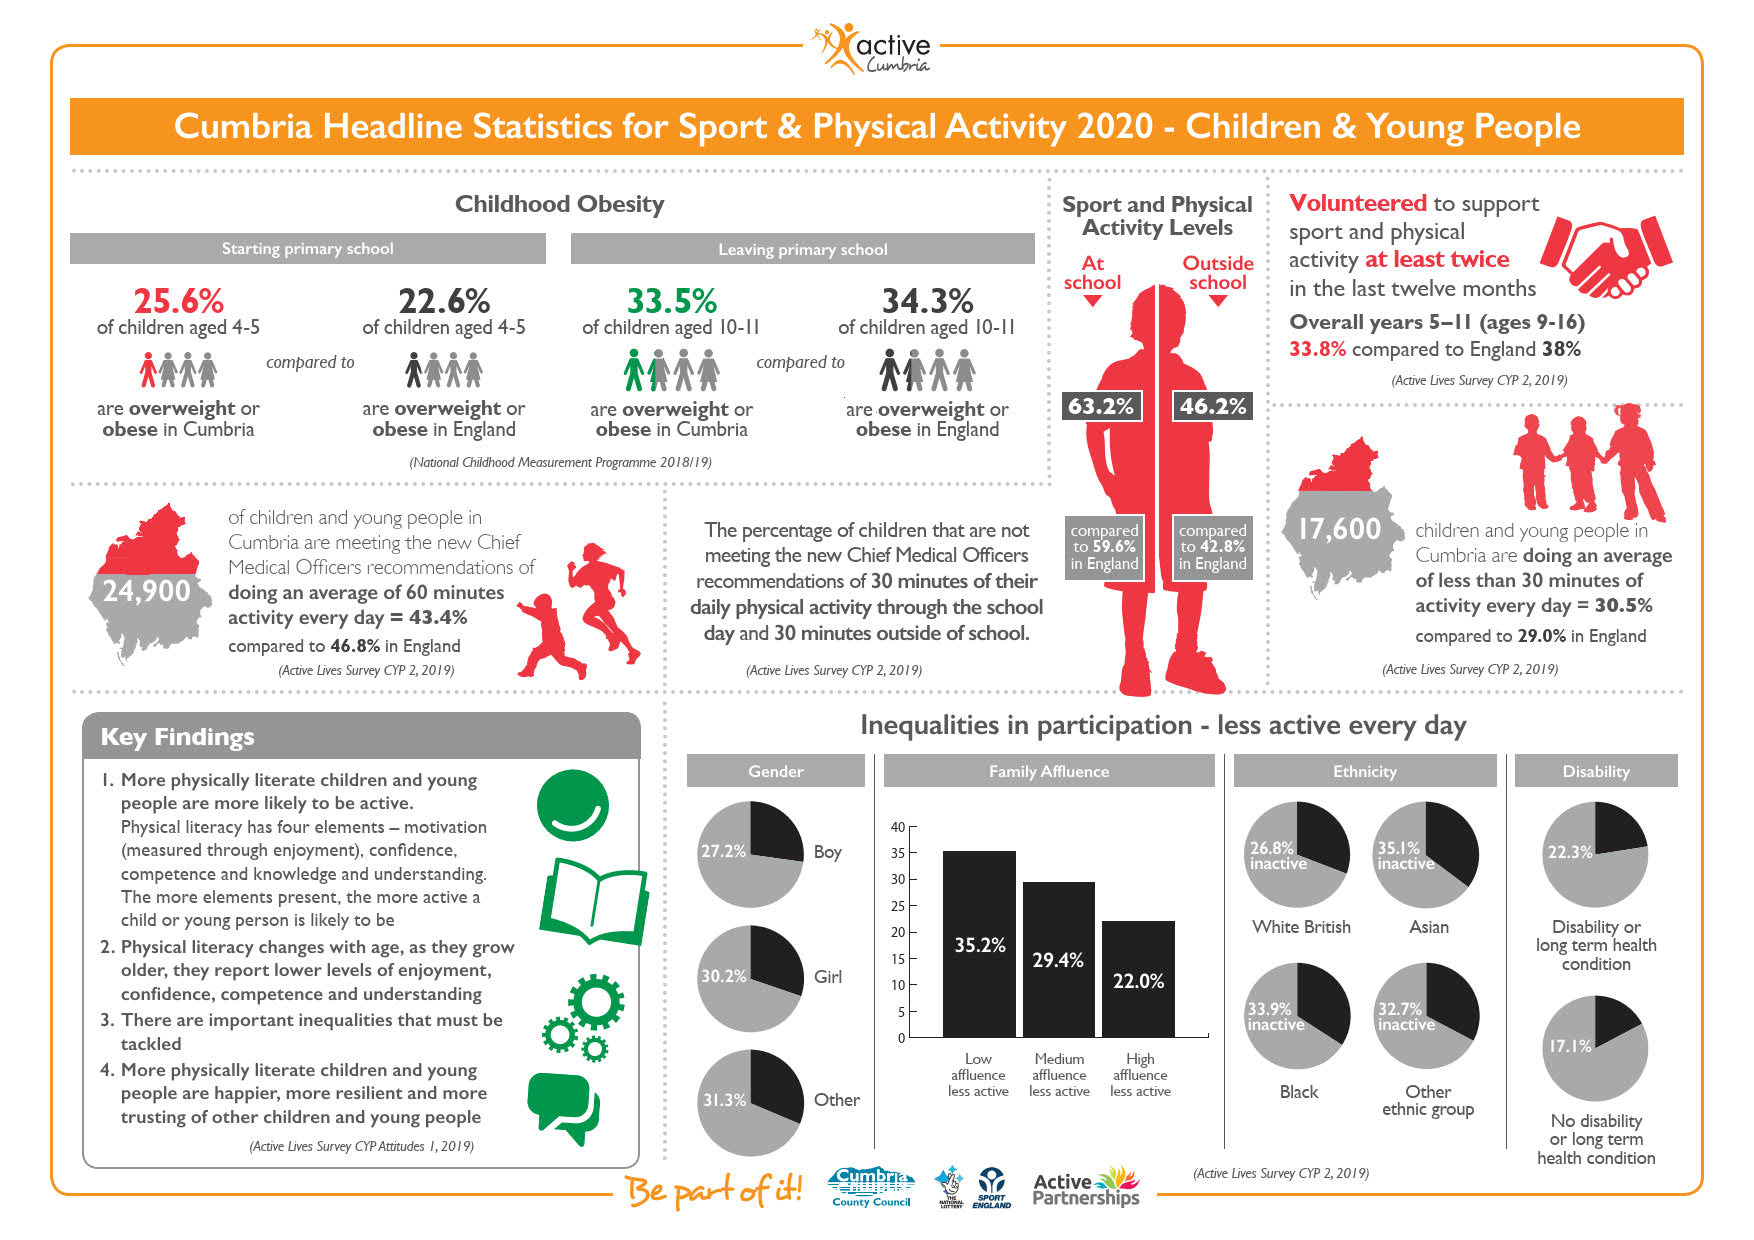 Cumbria Children & Young People Infographic - Sport & Physical Activity Statistics